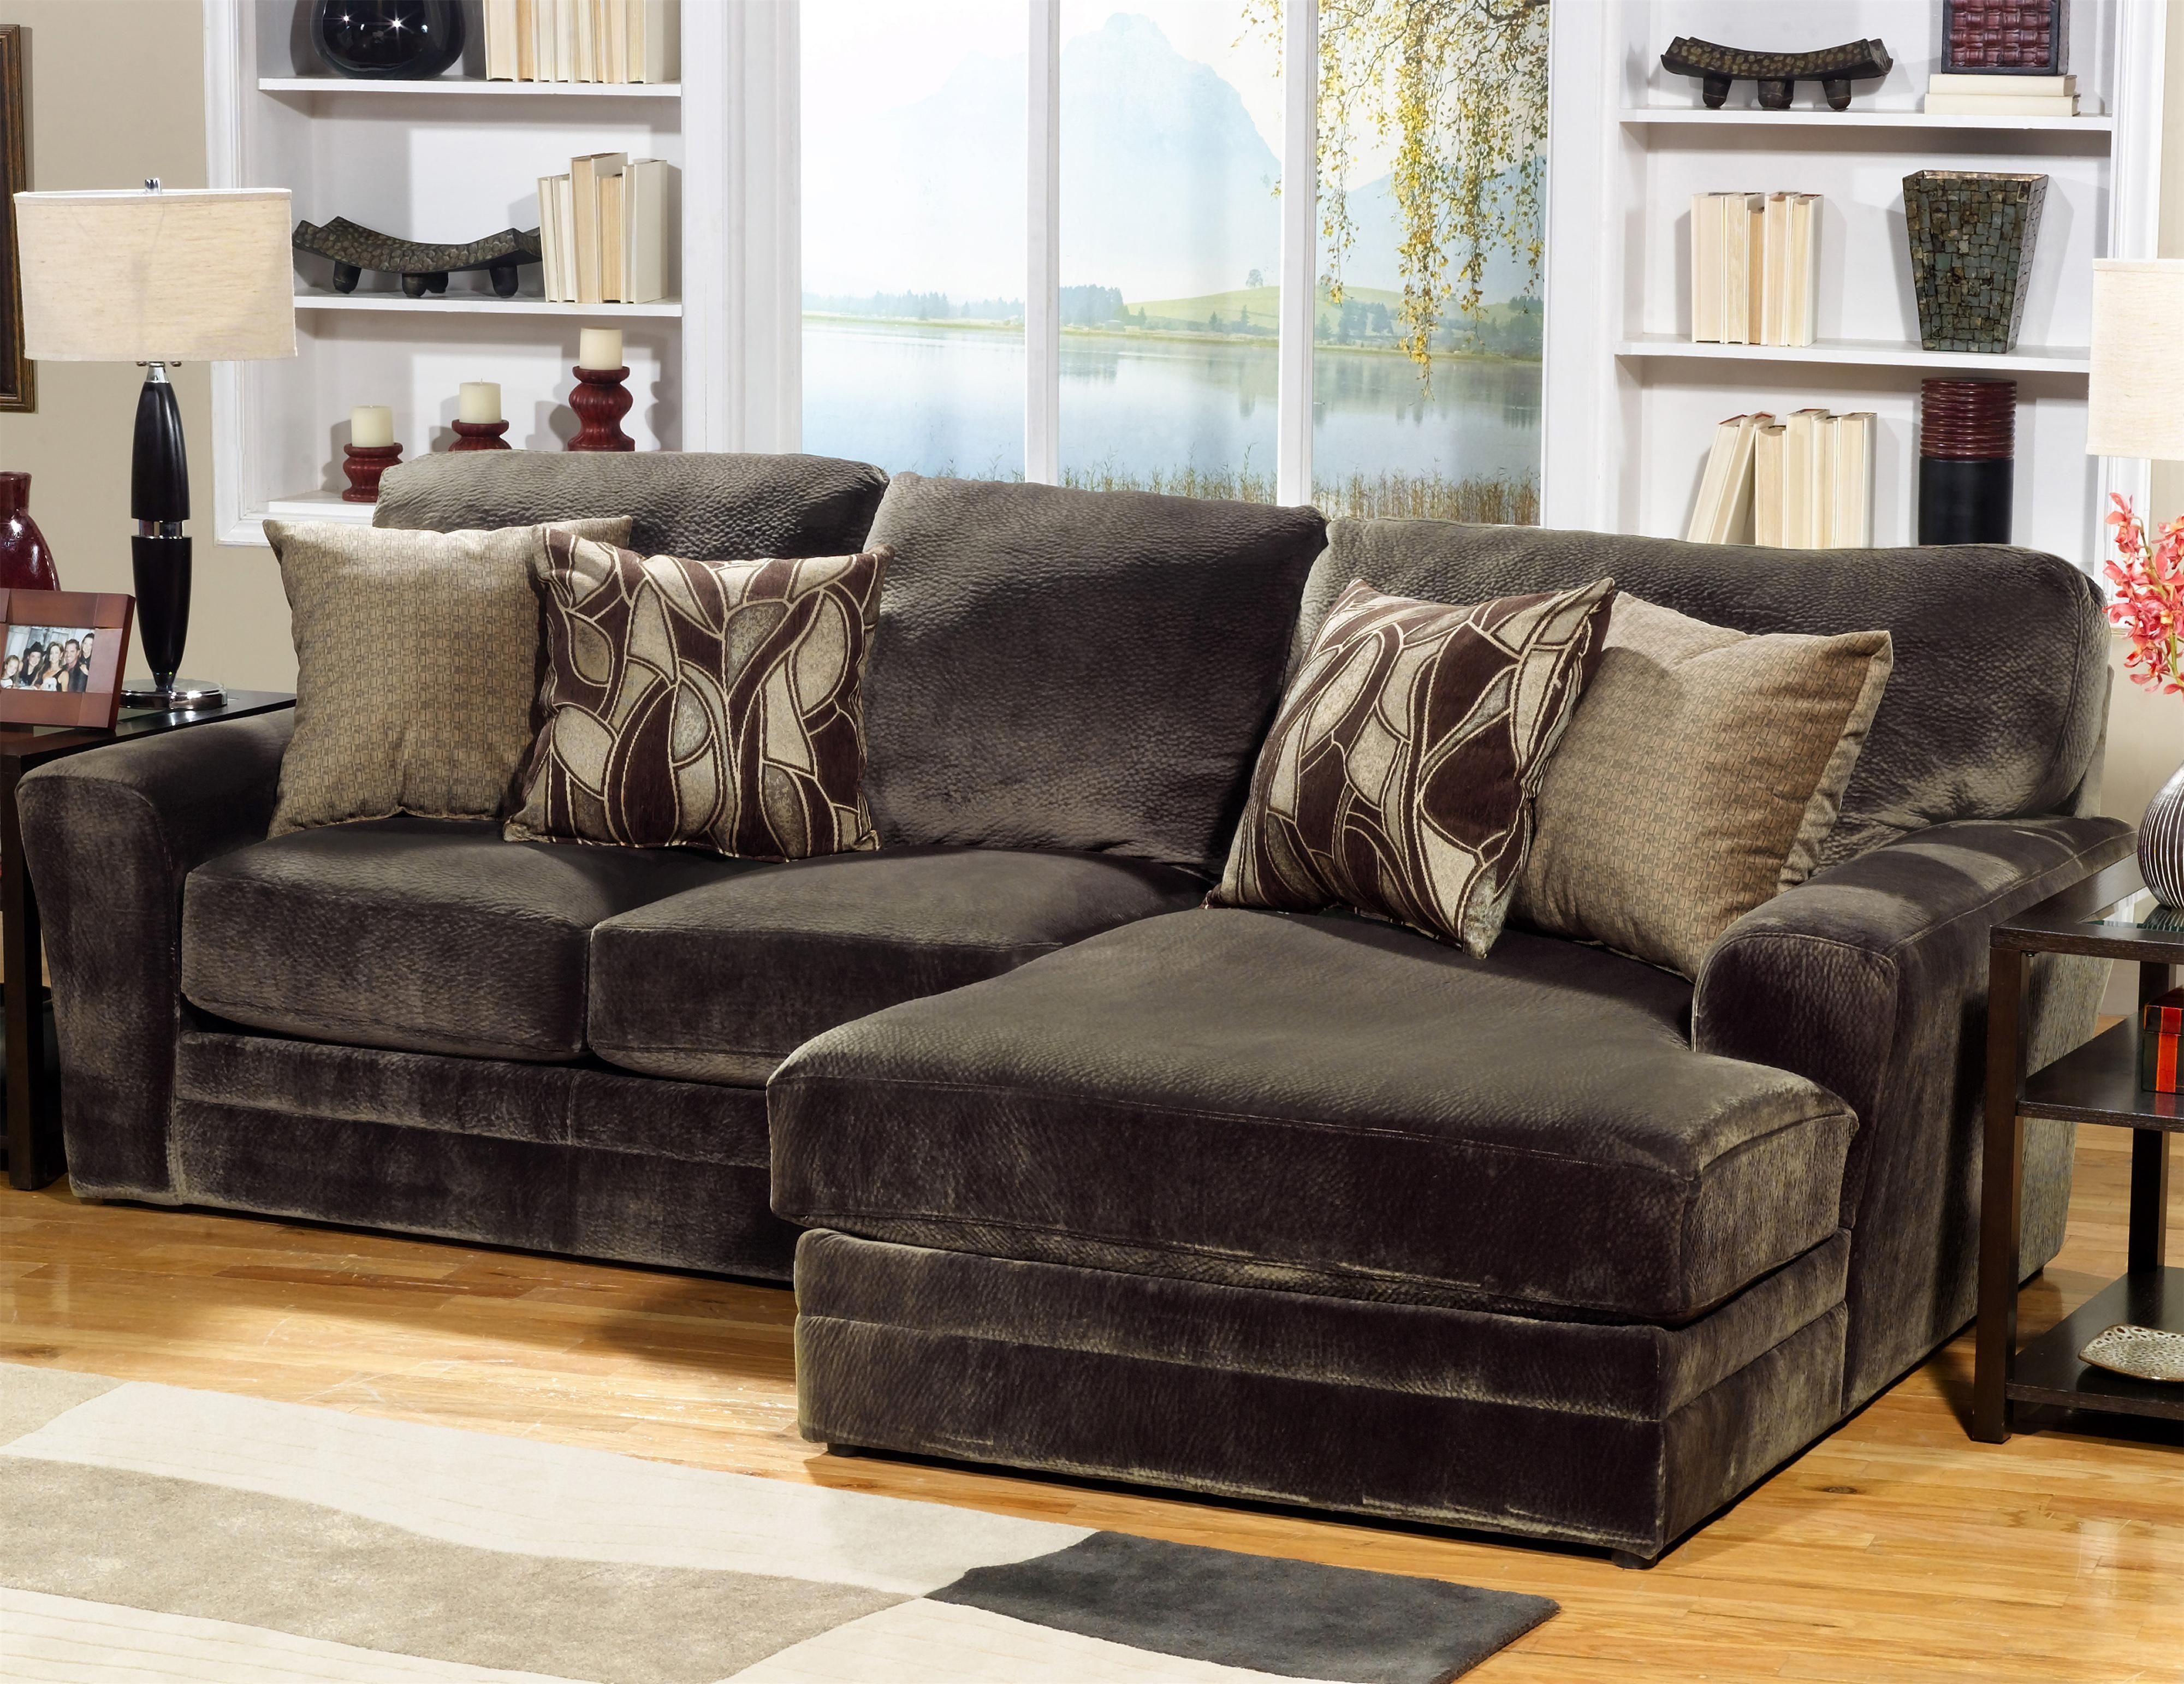 2 Piece Sectional Sofa With Rsf Chaisejackson Furniture | Wolf With Regard To Lancaster Pa Sectional Sofas (Gallery 5 of 10)